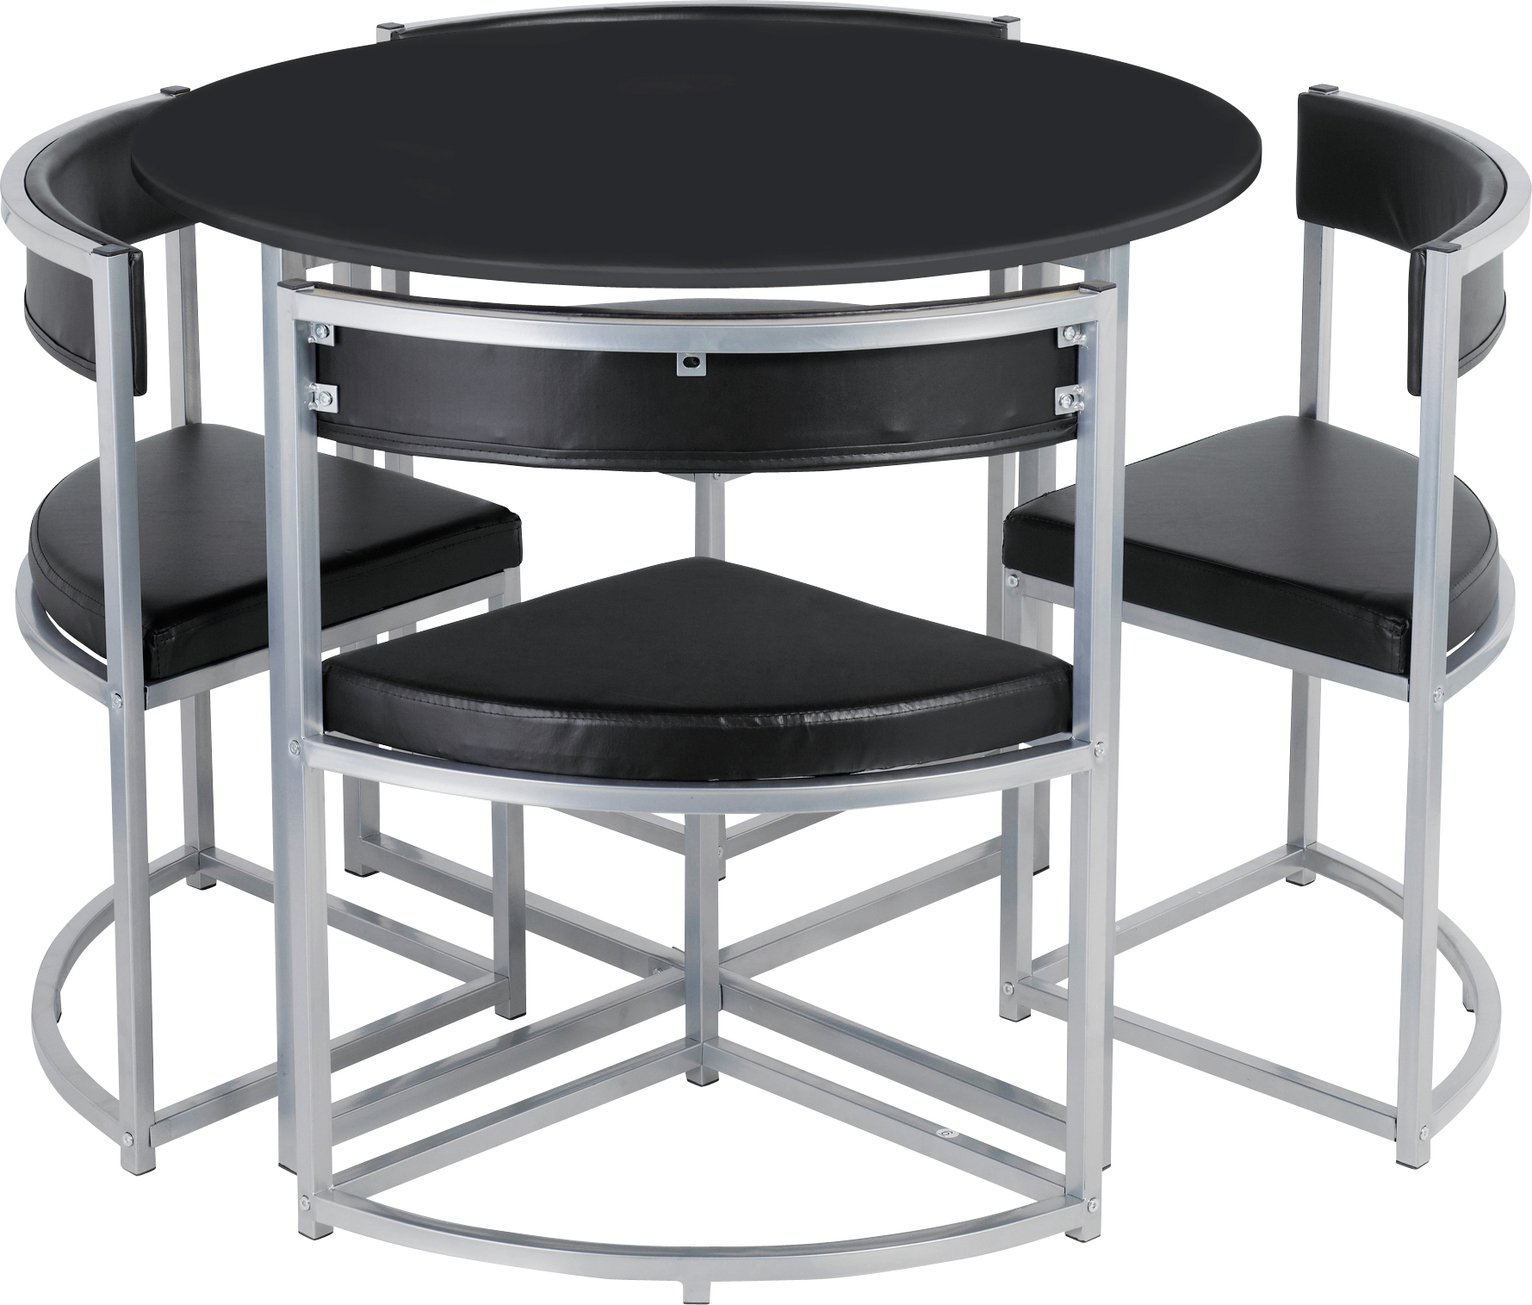 Hygena Milan Space Saver Table & 4 Chairs Review